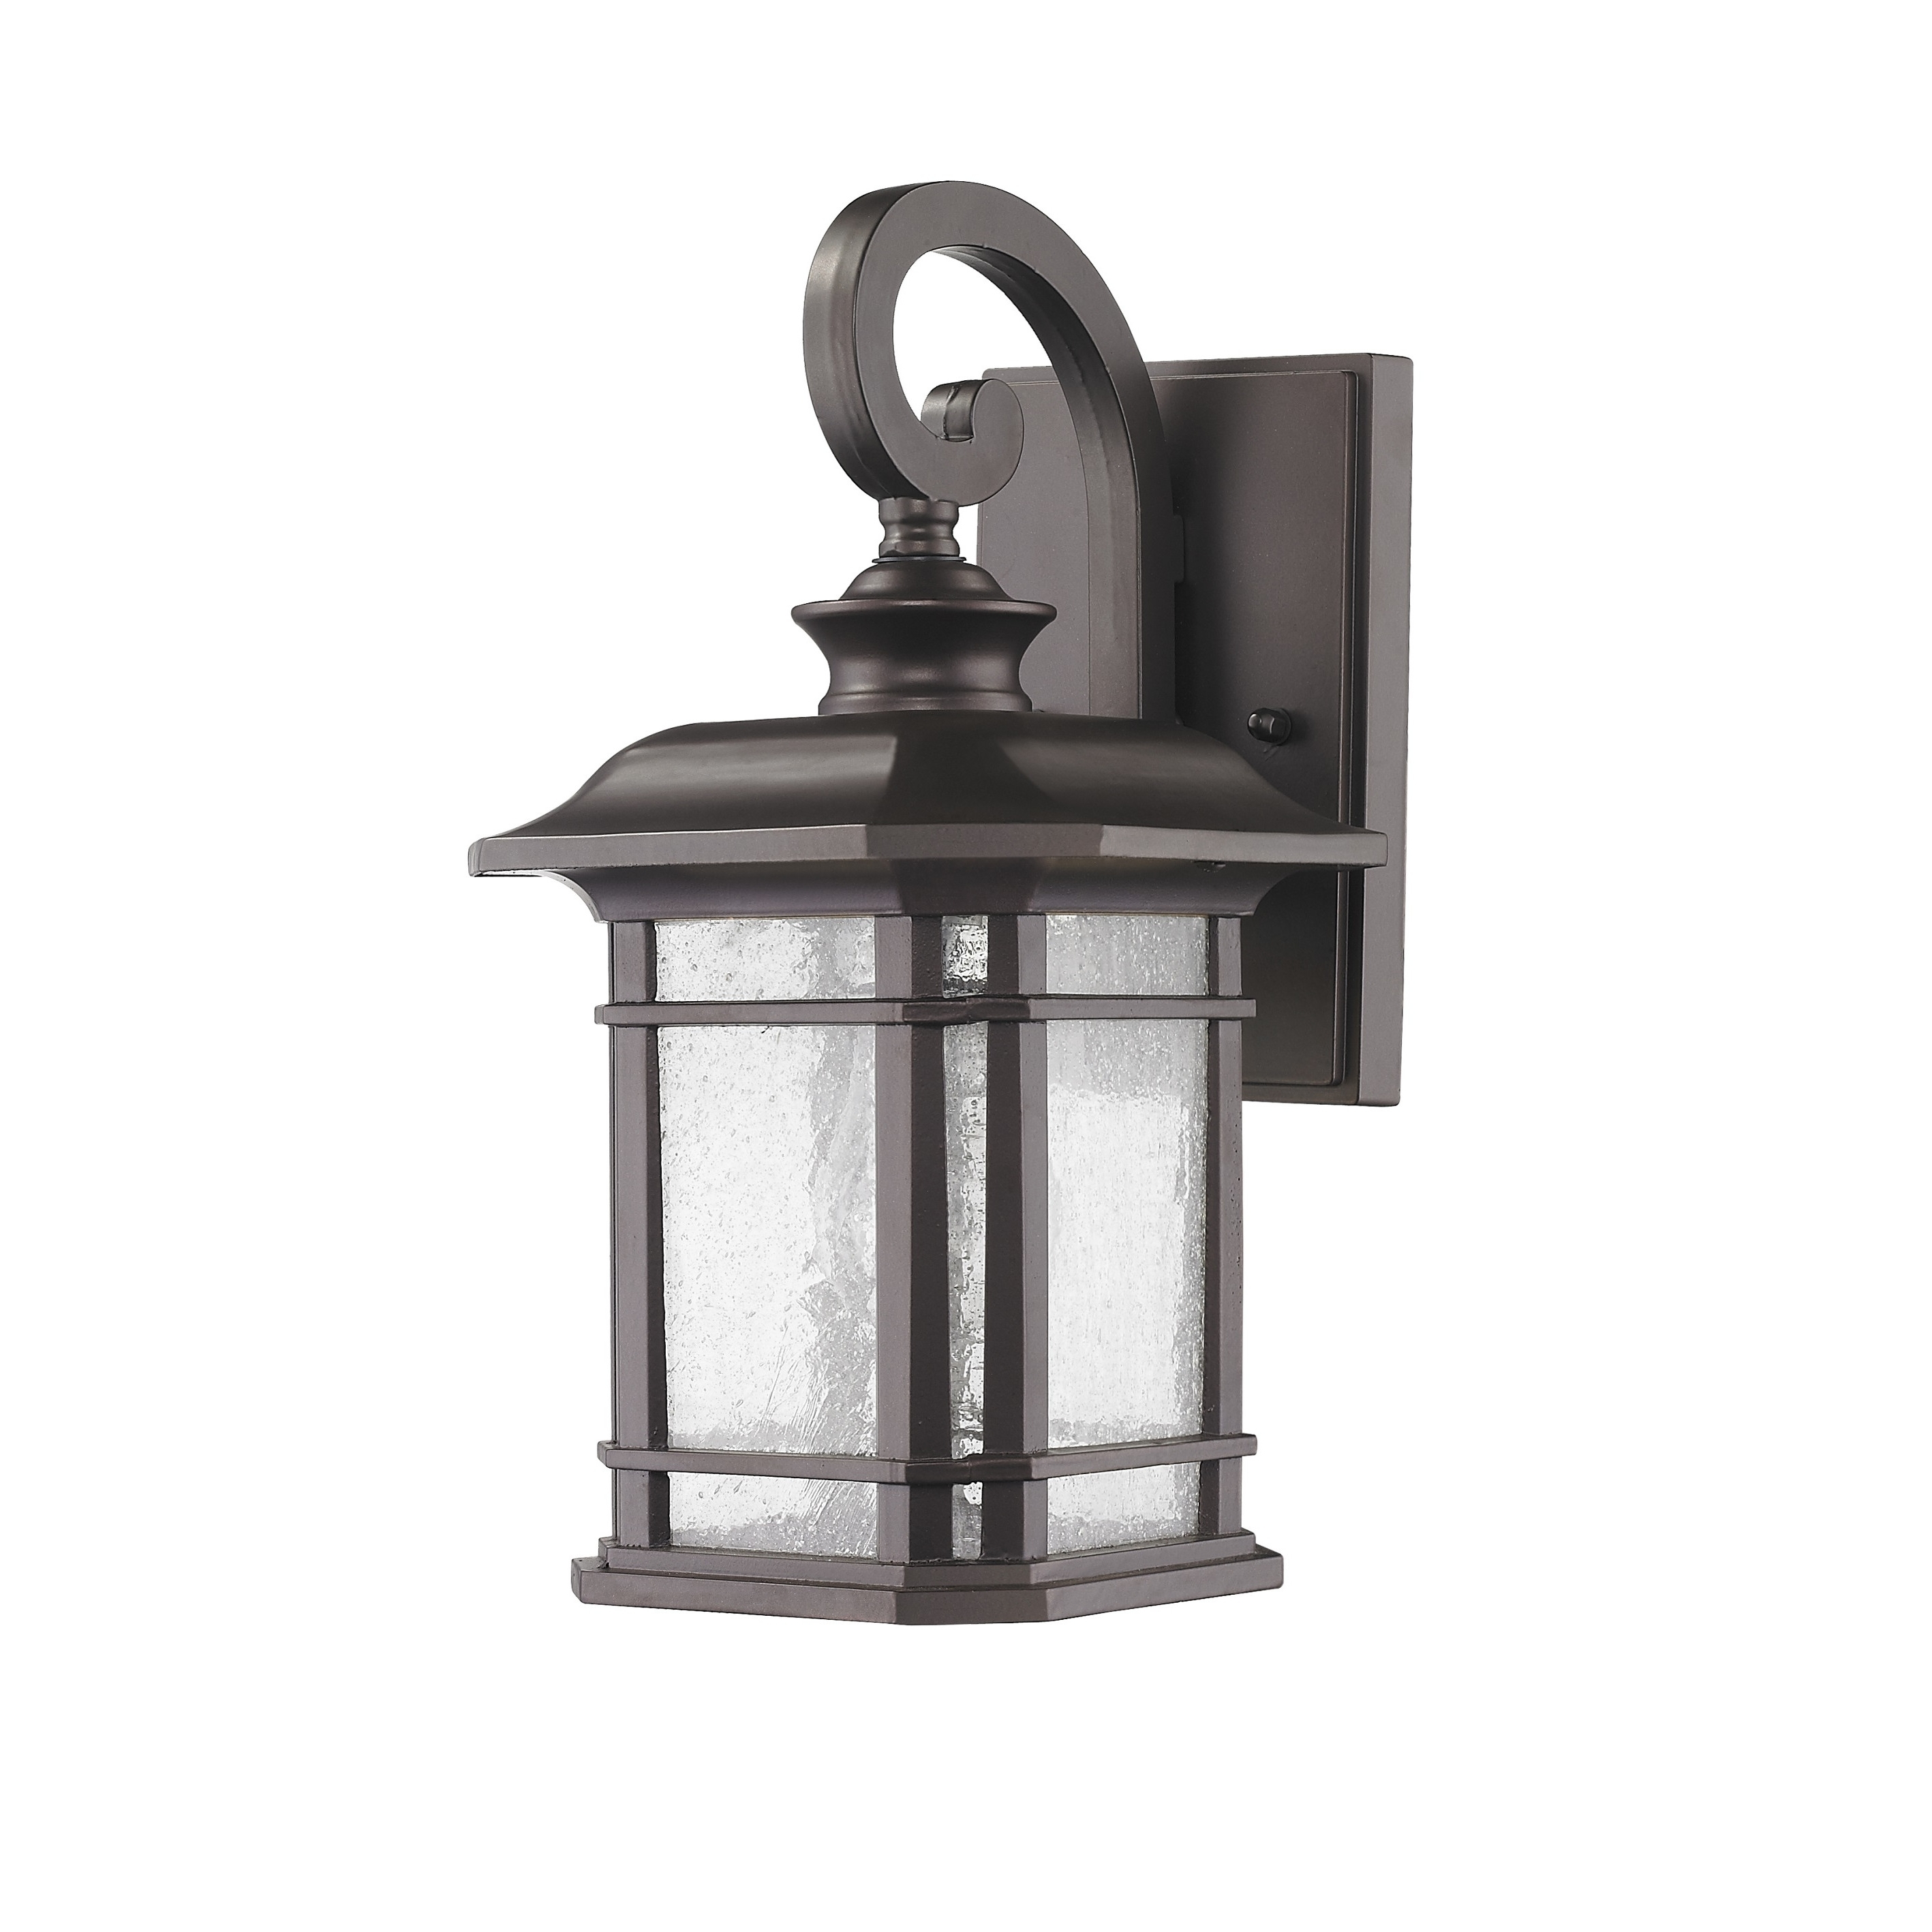 Fashionable Outdoor Wall Lighting Wayfair Transitional 1 Light Lantern ~ Clipgoo With Garden Porch Light Fixtures At Wayfair (View 6 of 20)